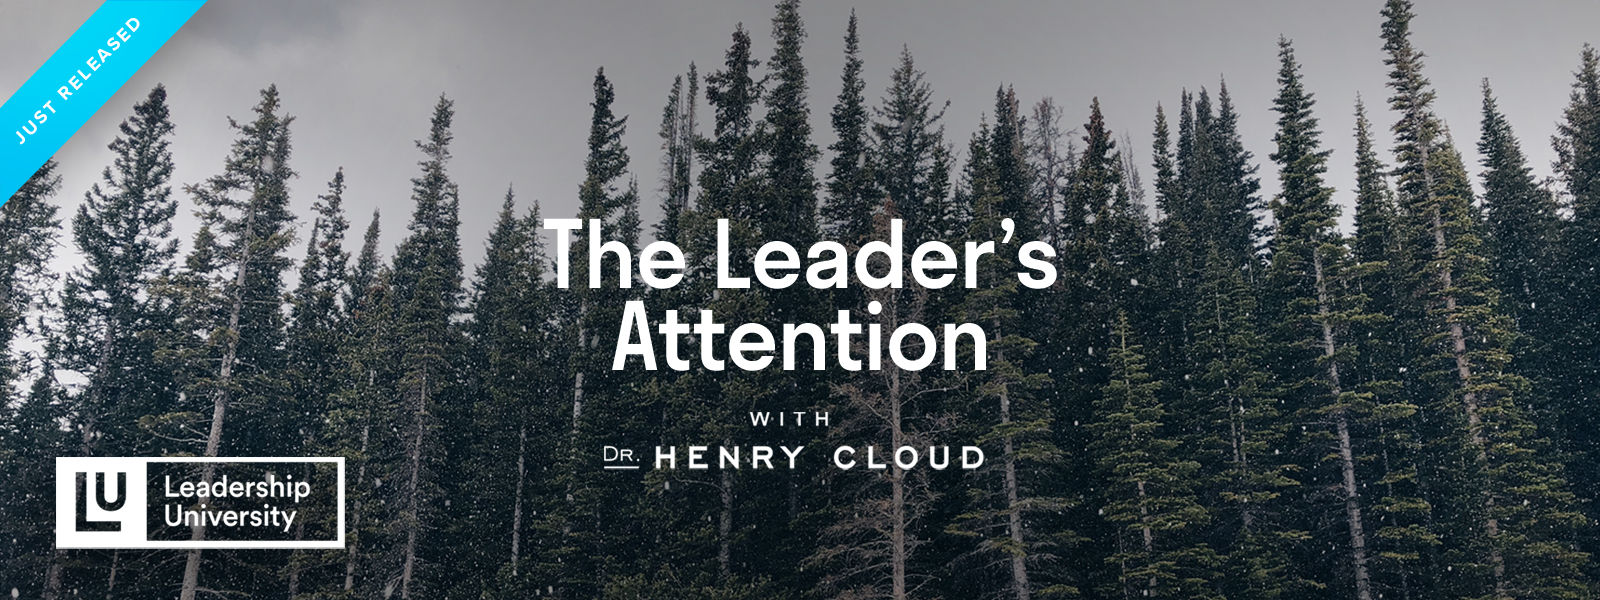 The Leader's Attention